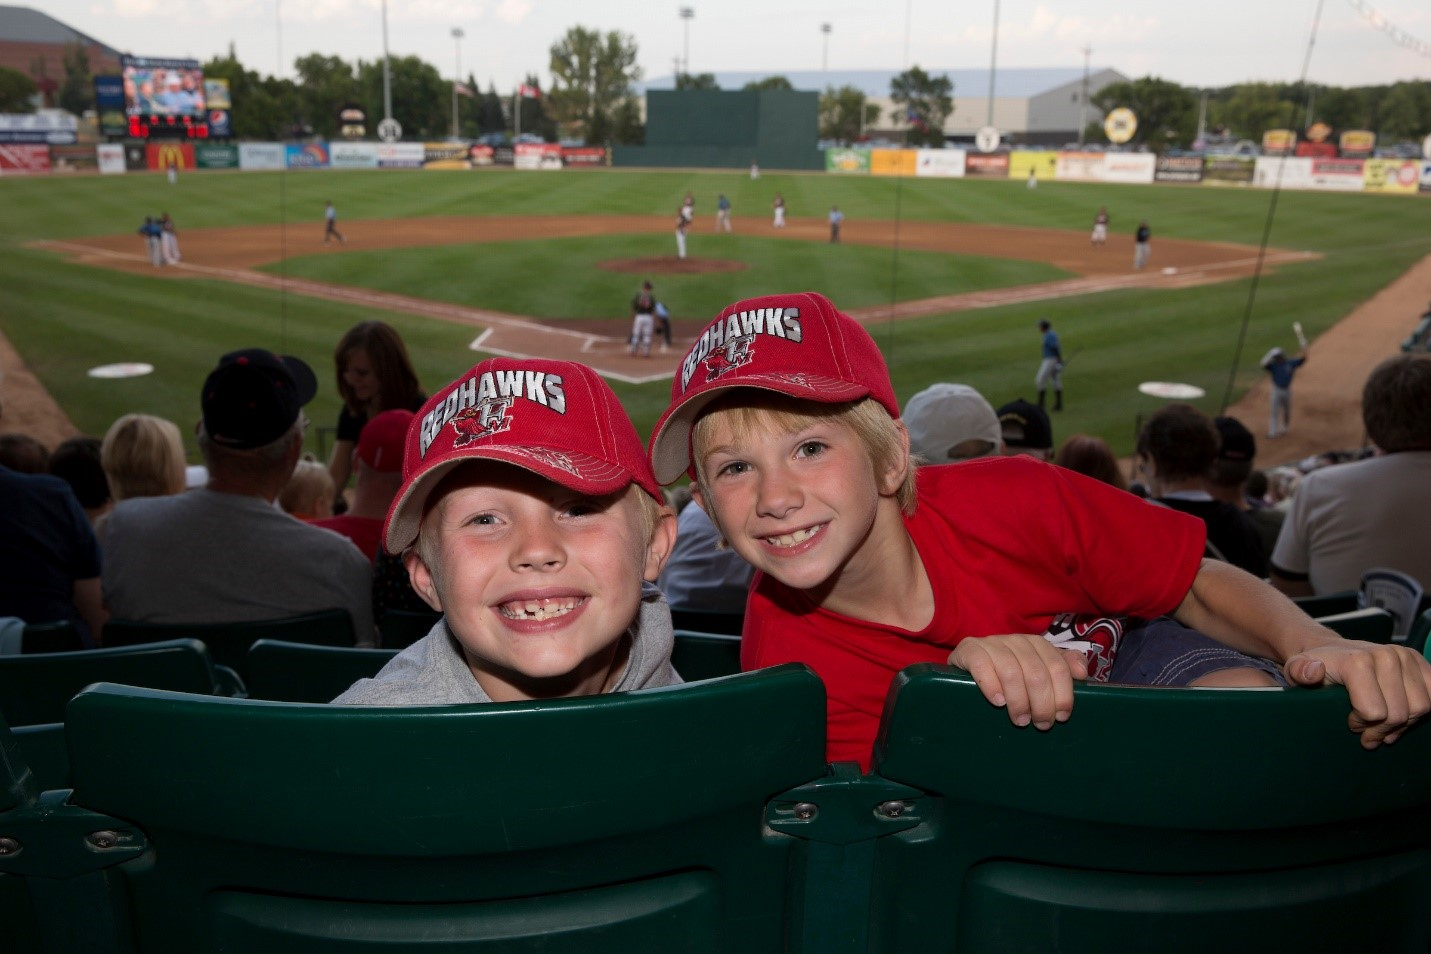 Fans enjoy a game of Fargo-Moorhead RedHawks baseball. (